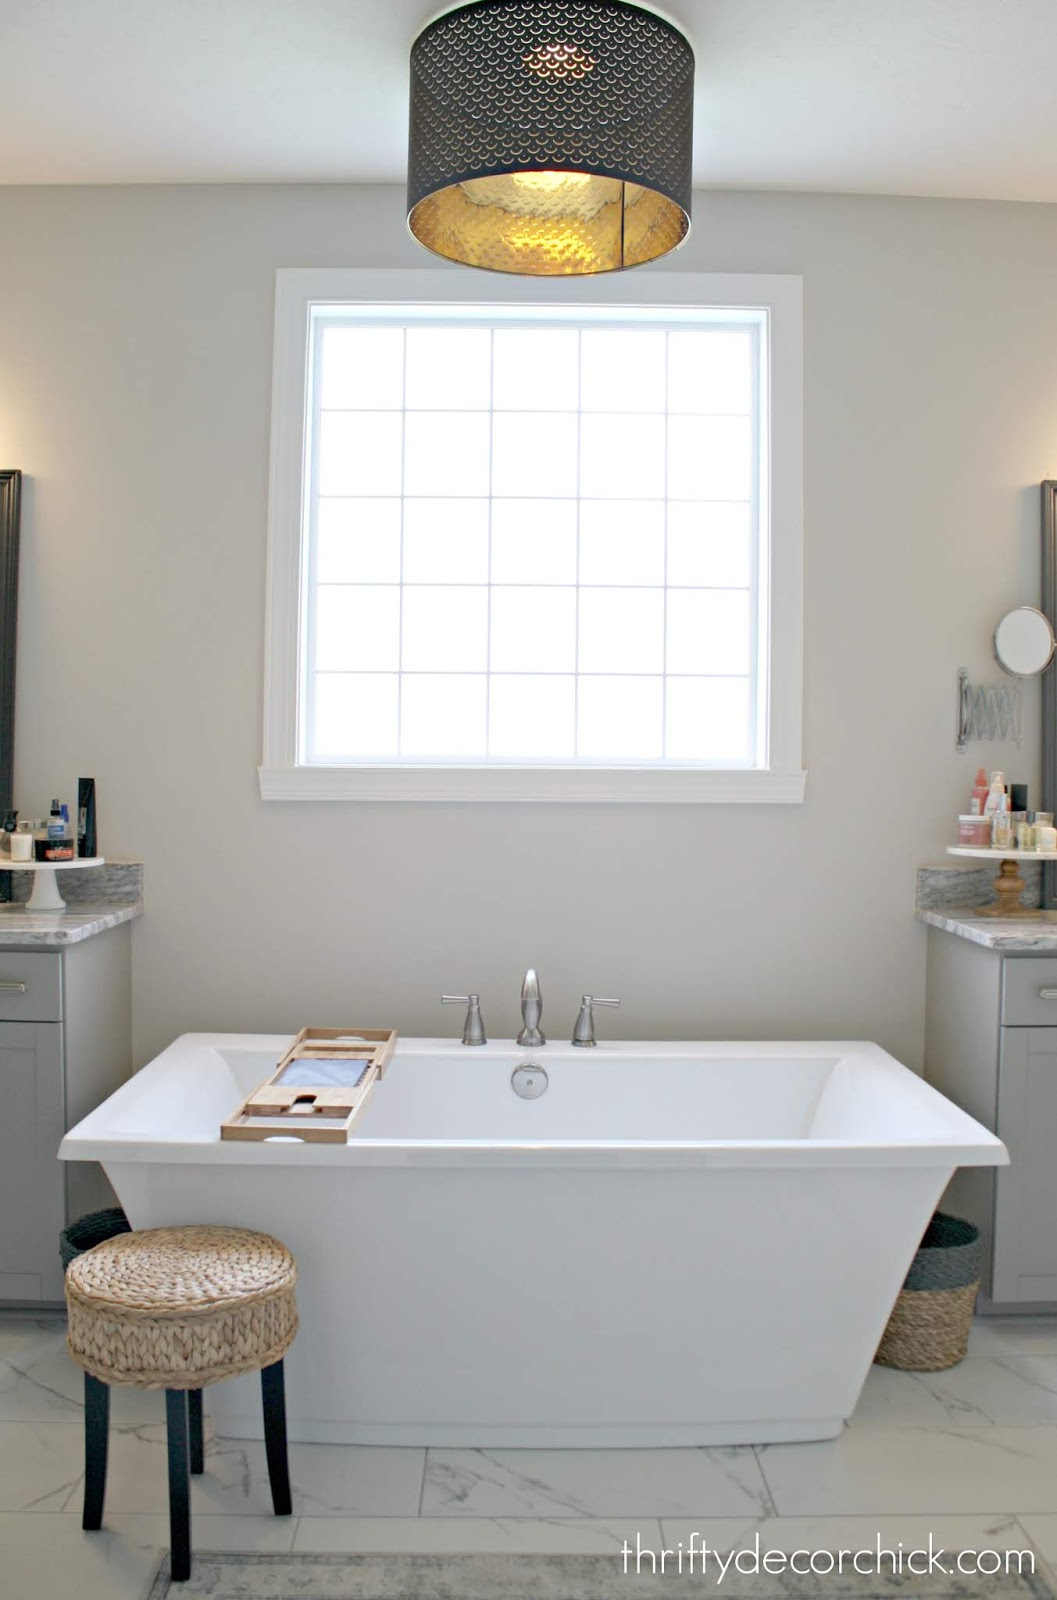 Freestanding soaking tub